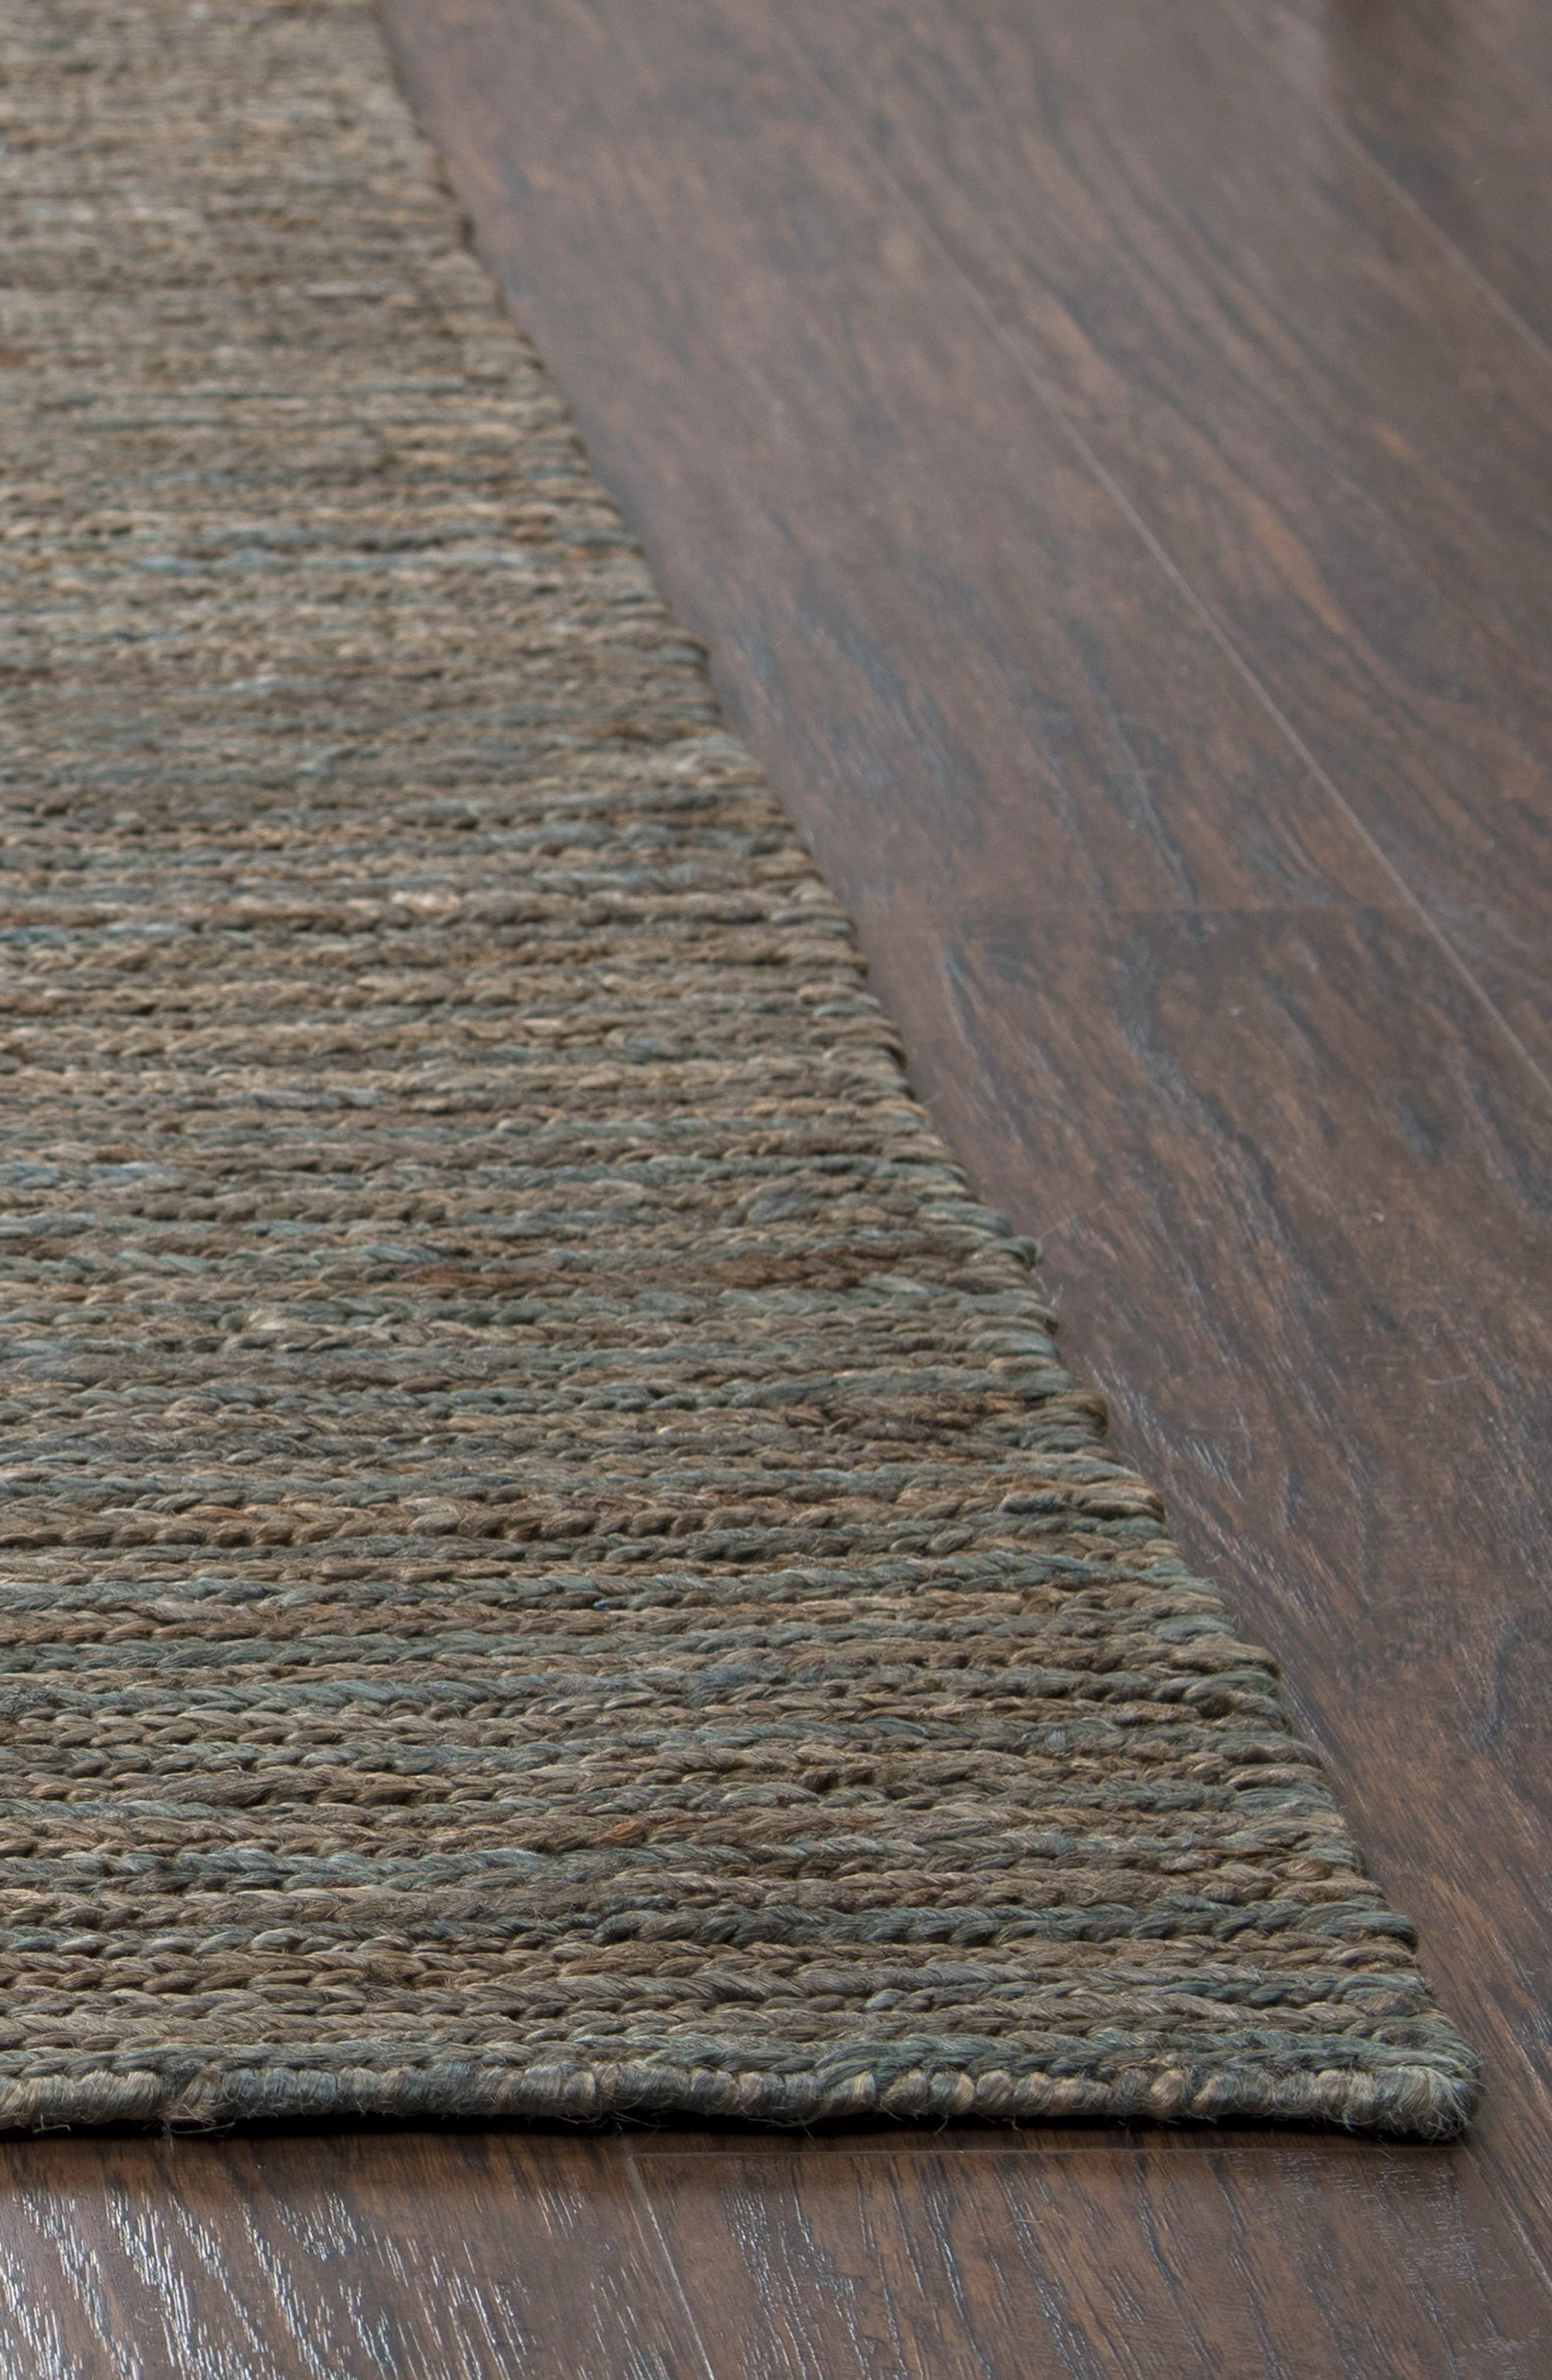 'Whittier Collection' Handwoven Jute Area Rug,                             Alternate thumbnail 2, color,                             400